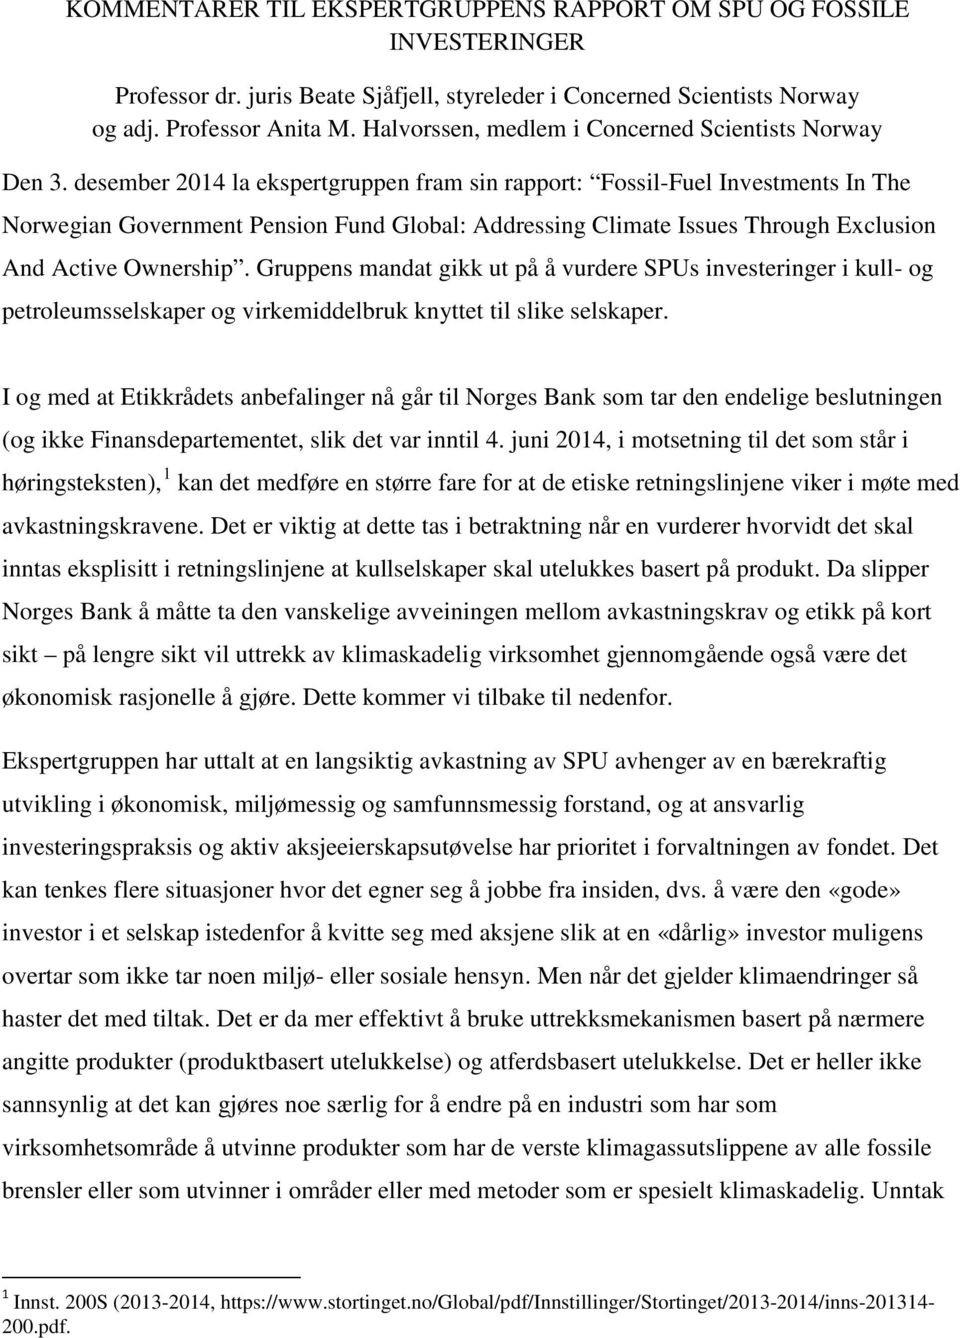 desember 2014 la ekspertgruppen fram sin rapport: Fossil-Fuel Investments In The Norwegian Government Pension Fund Global: Addressing Climate Issues Through Exclusion And Active Ownership.